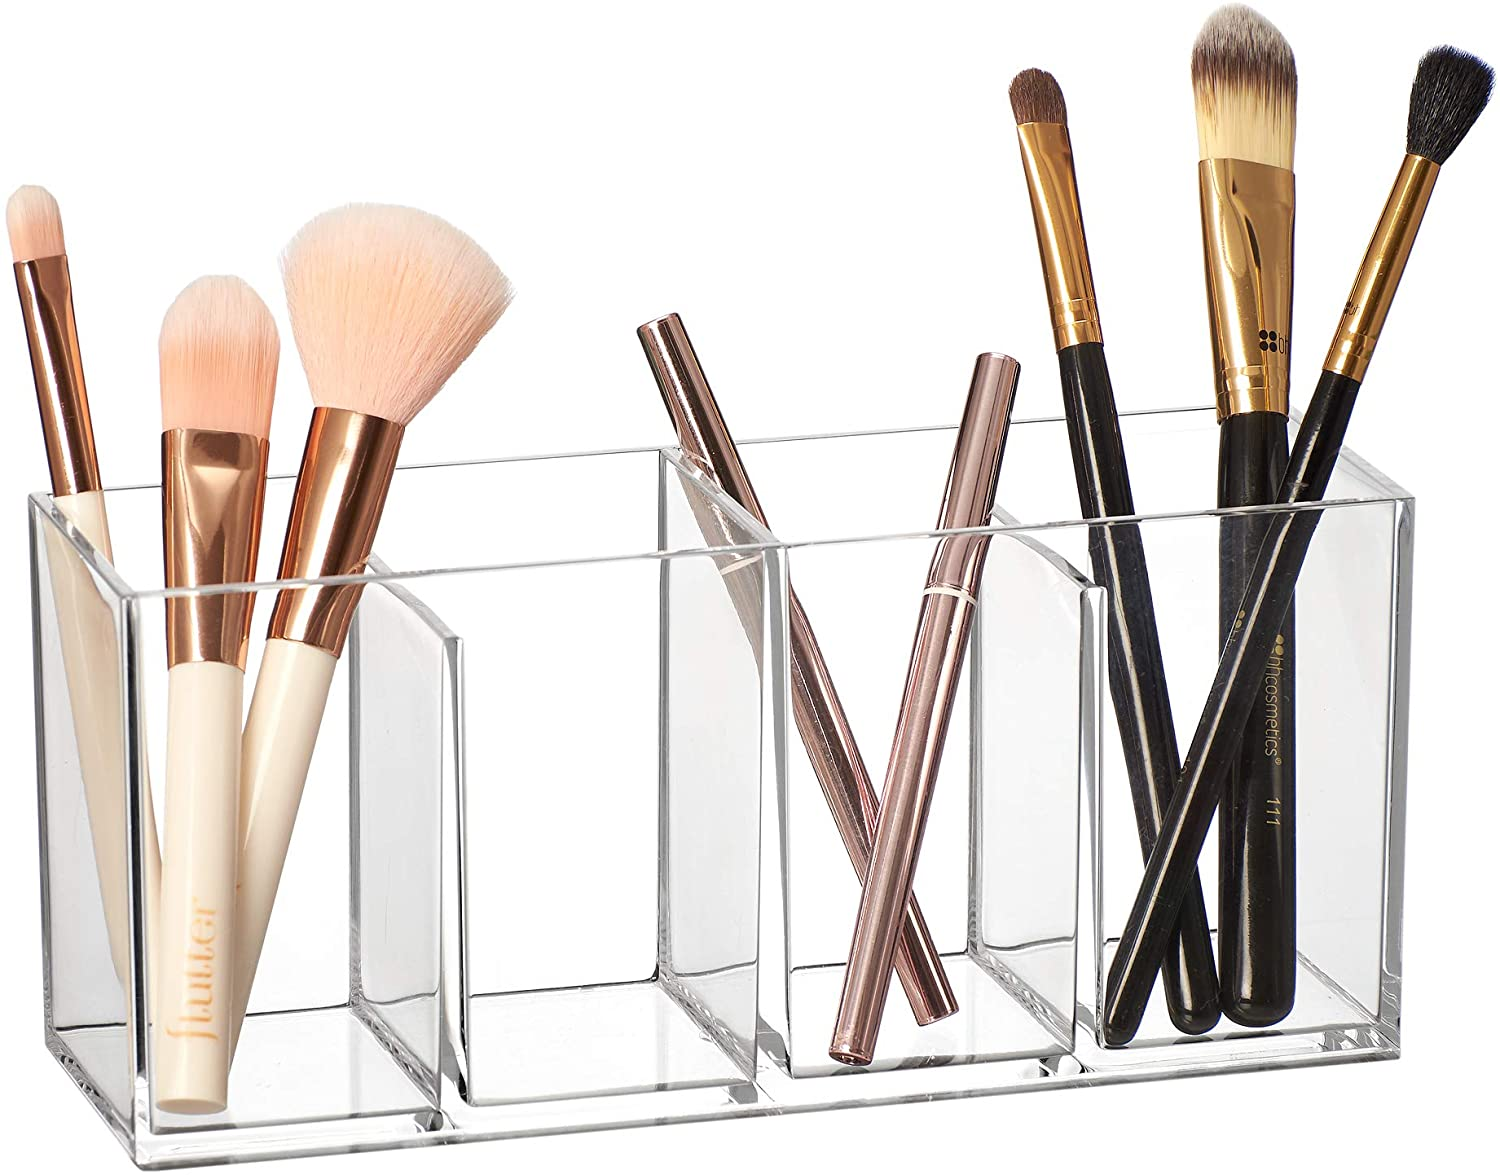 Amazing Abby - Glamour - Acrylic 4-Compartment Makeup Organizer, Transparent Plastic Makeup Brush Holder, Perfect Bathroom Vanity Storage Solution for Makeup Brushes, Eyebrow Pencils, and More